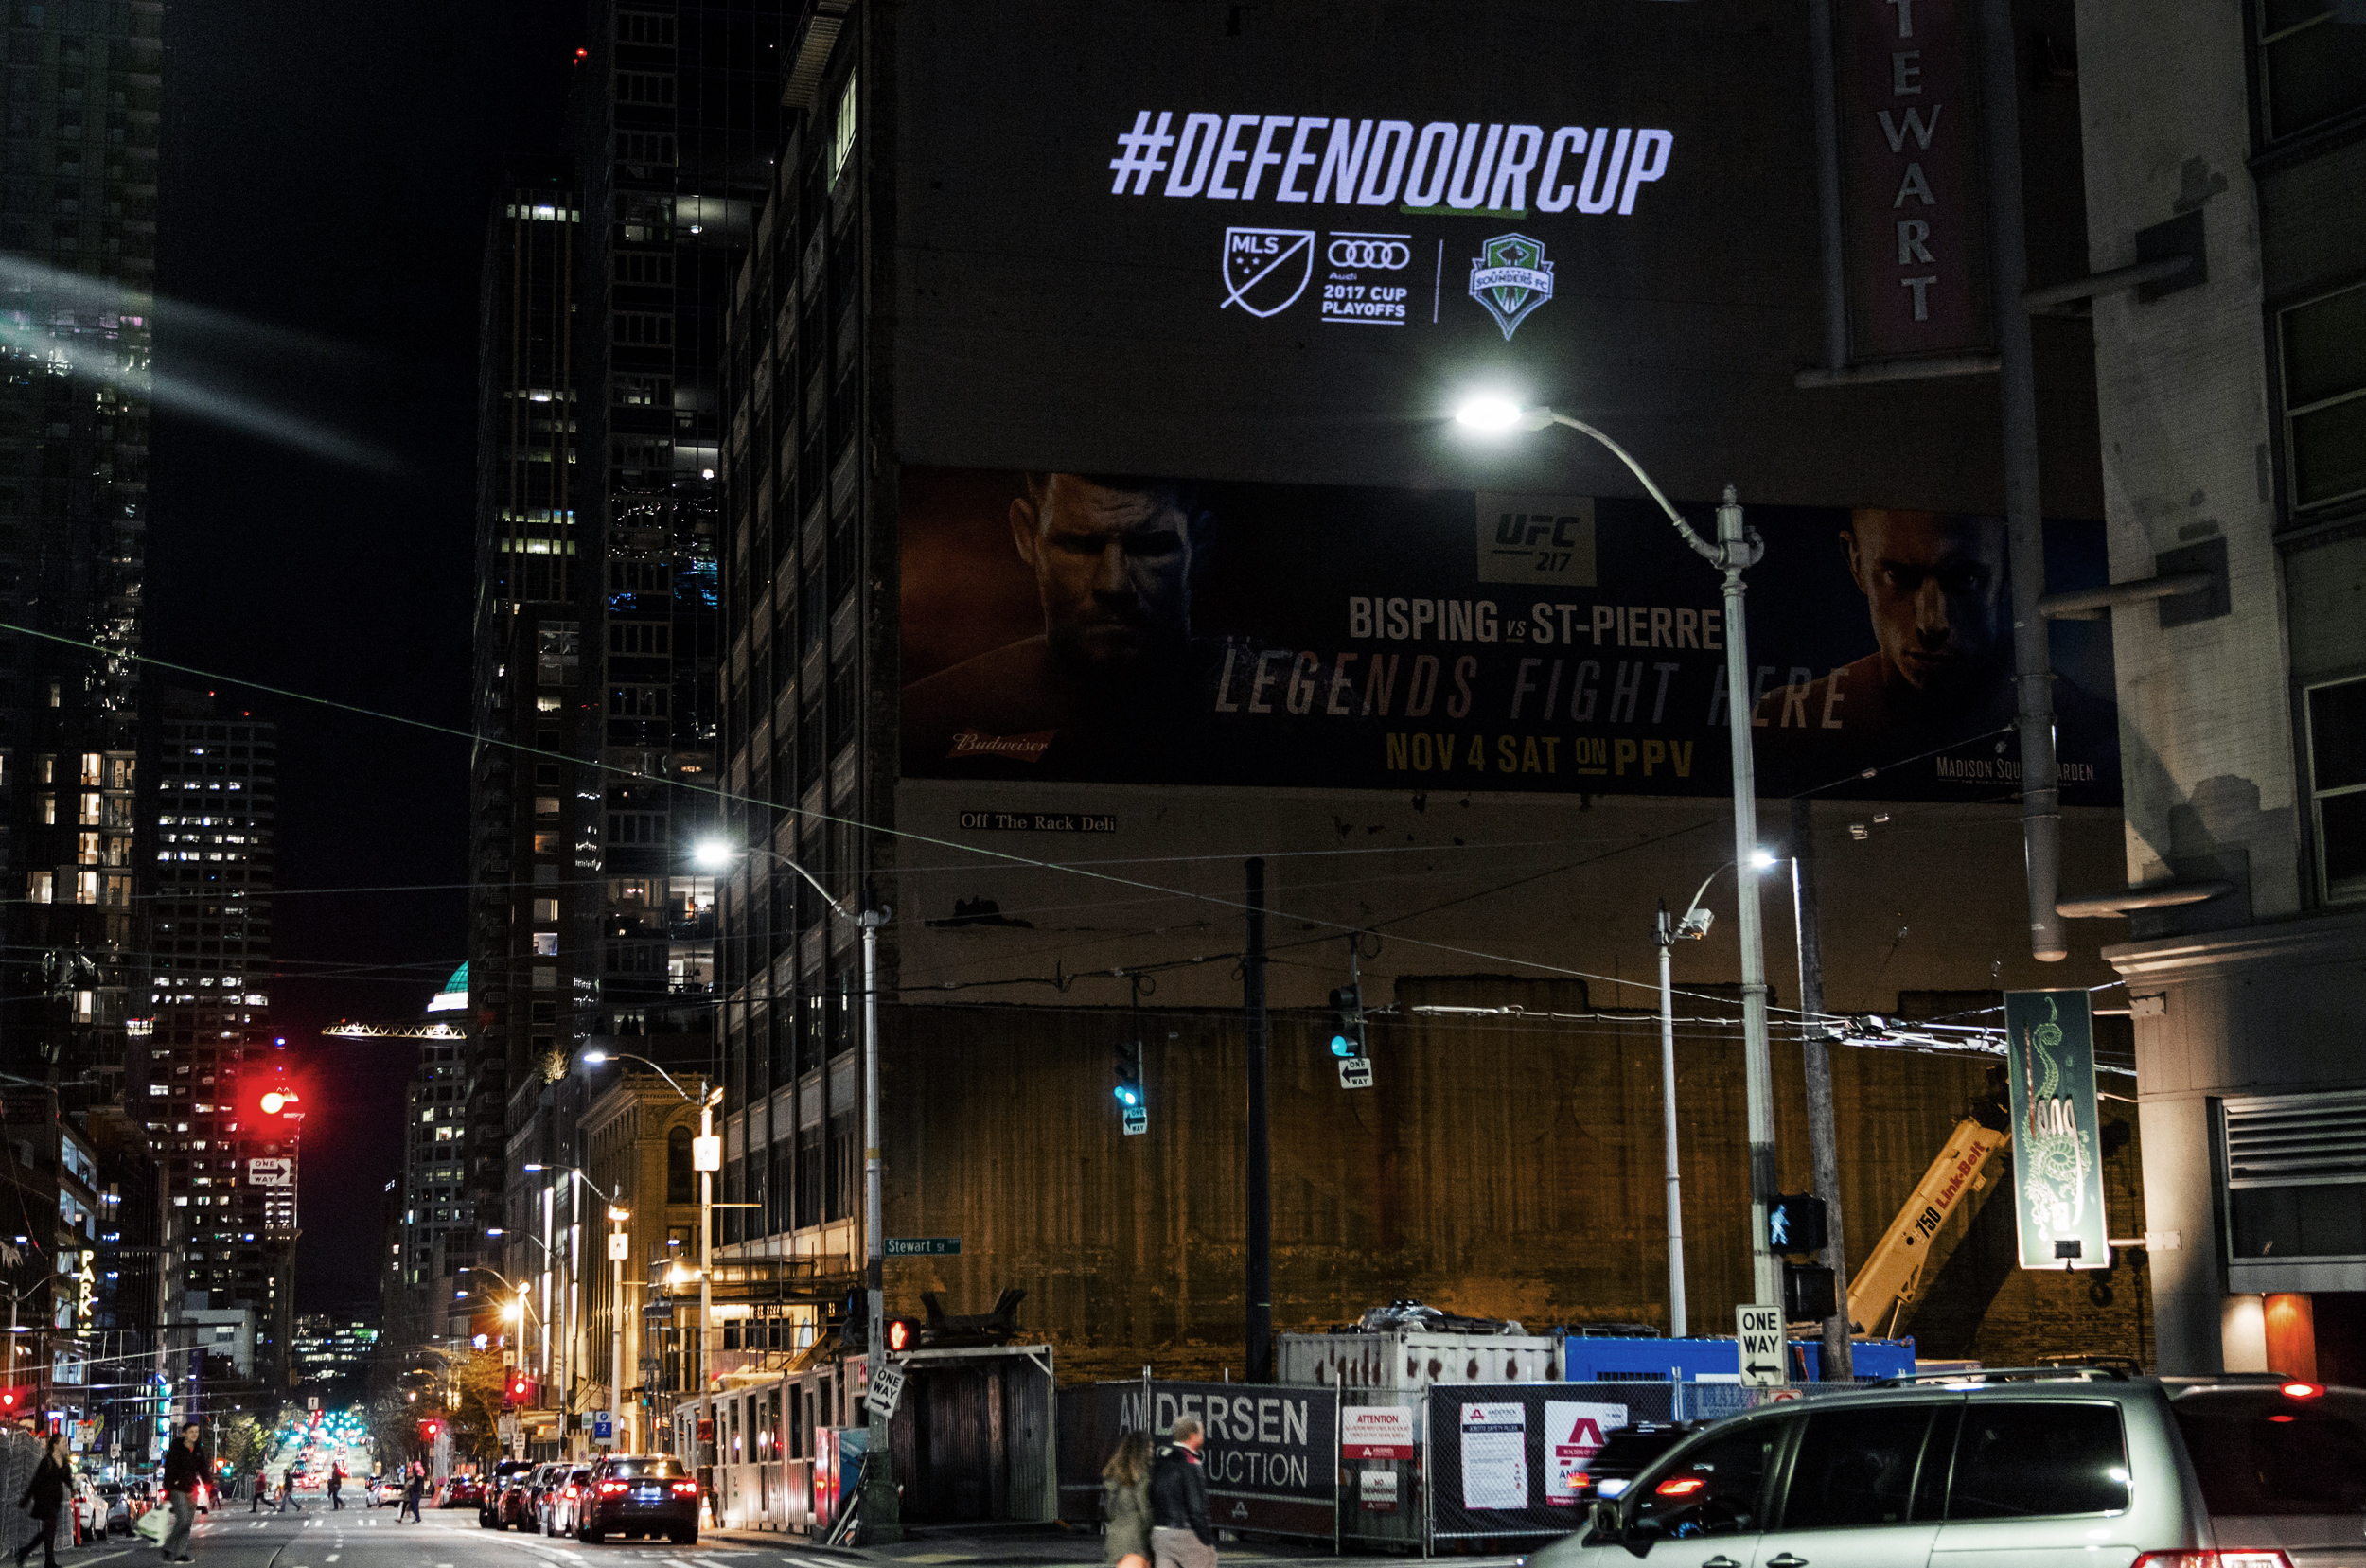 DefendOurCup-Projections.jpg